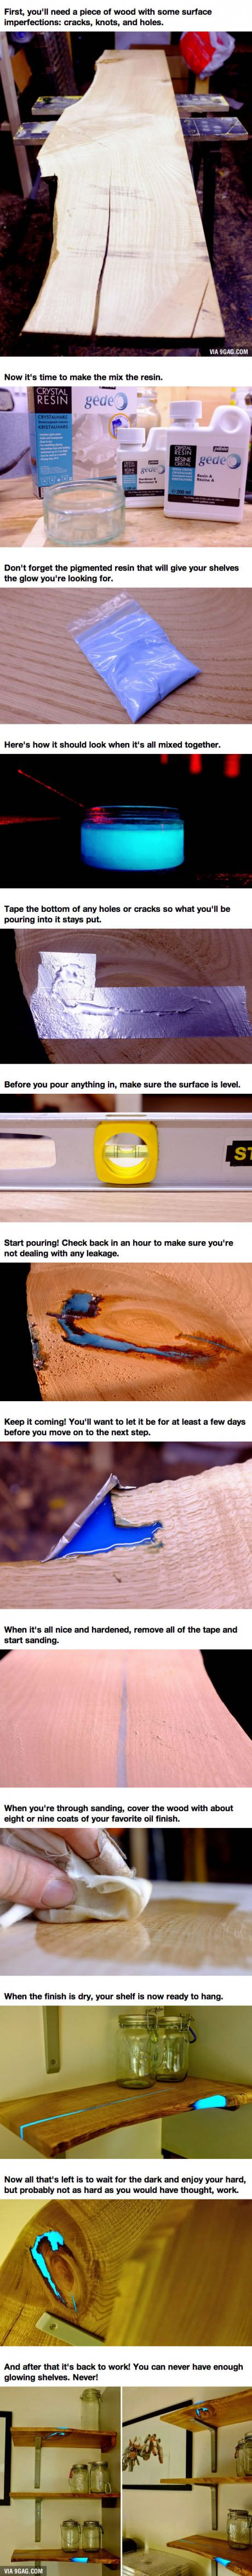 DIY Awesome Glowing Shelves Are Easy To Make!